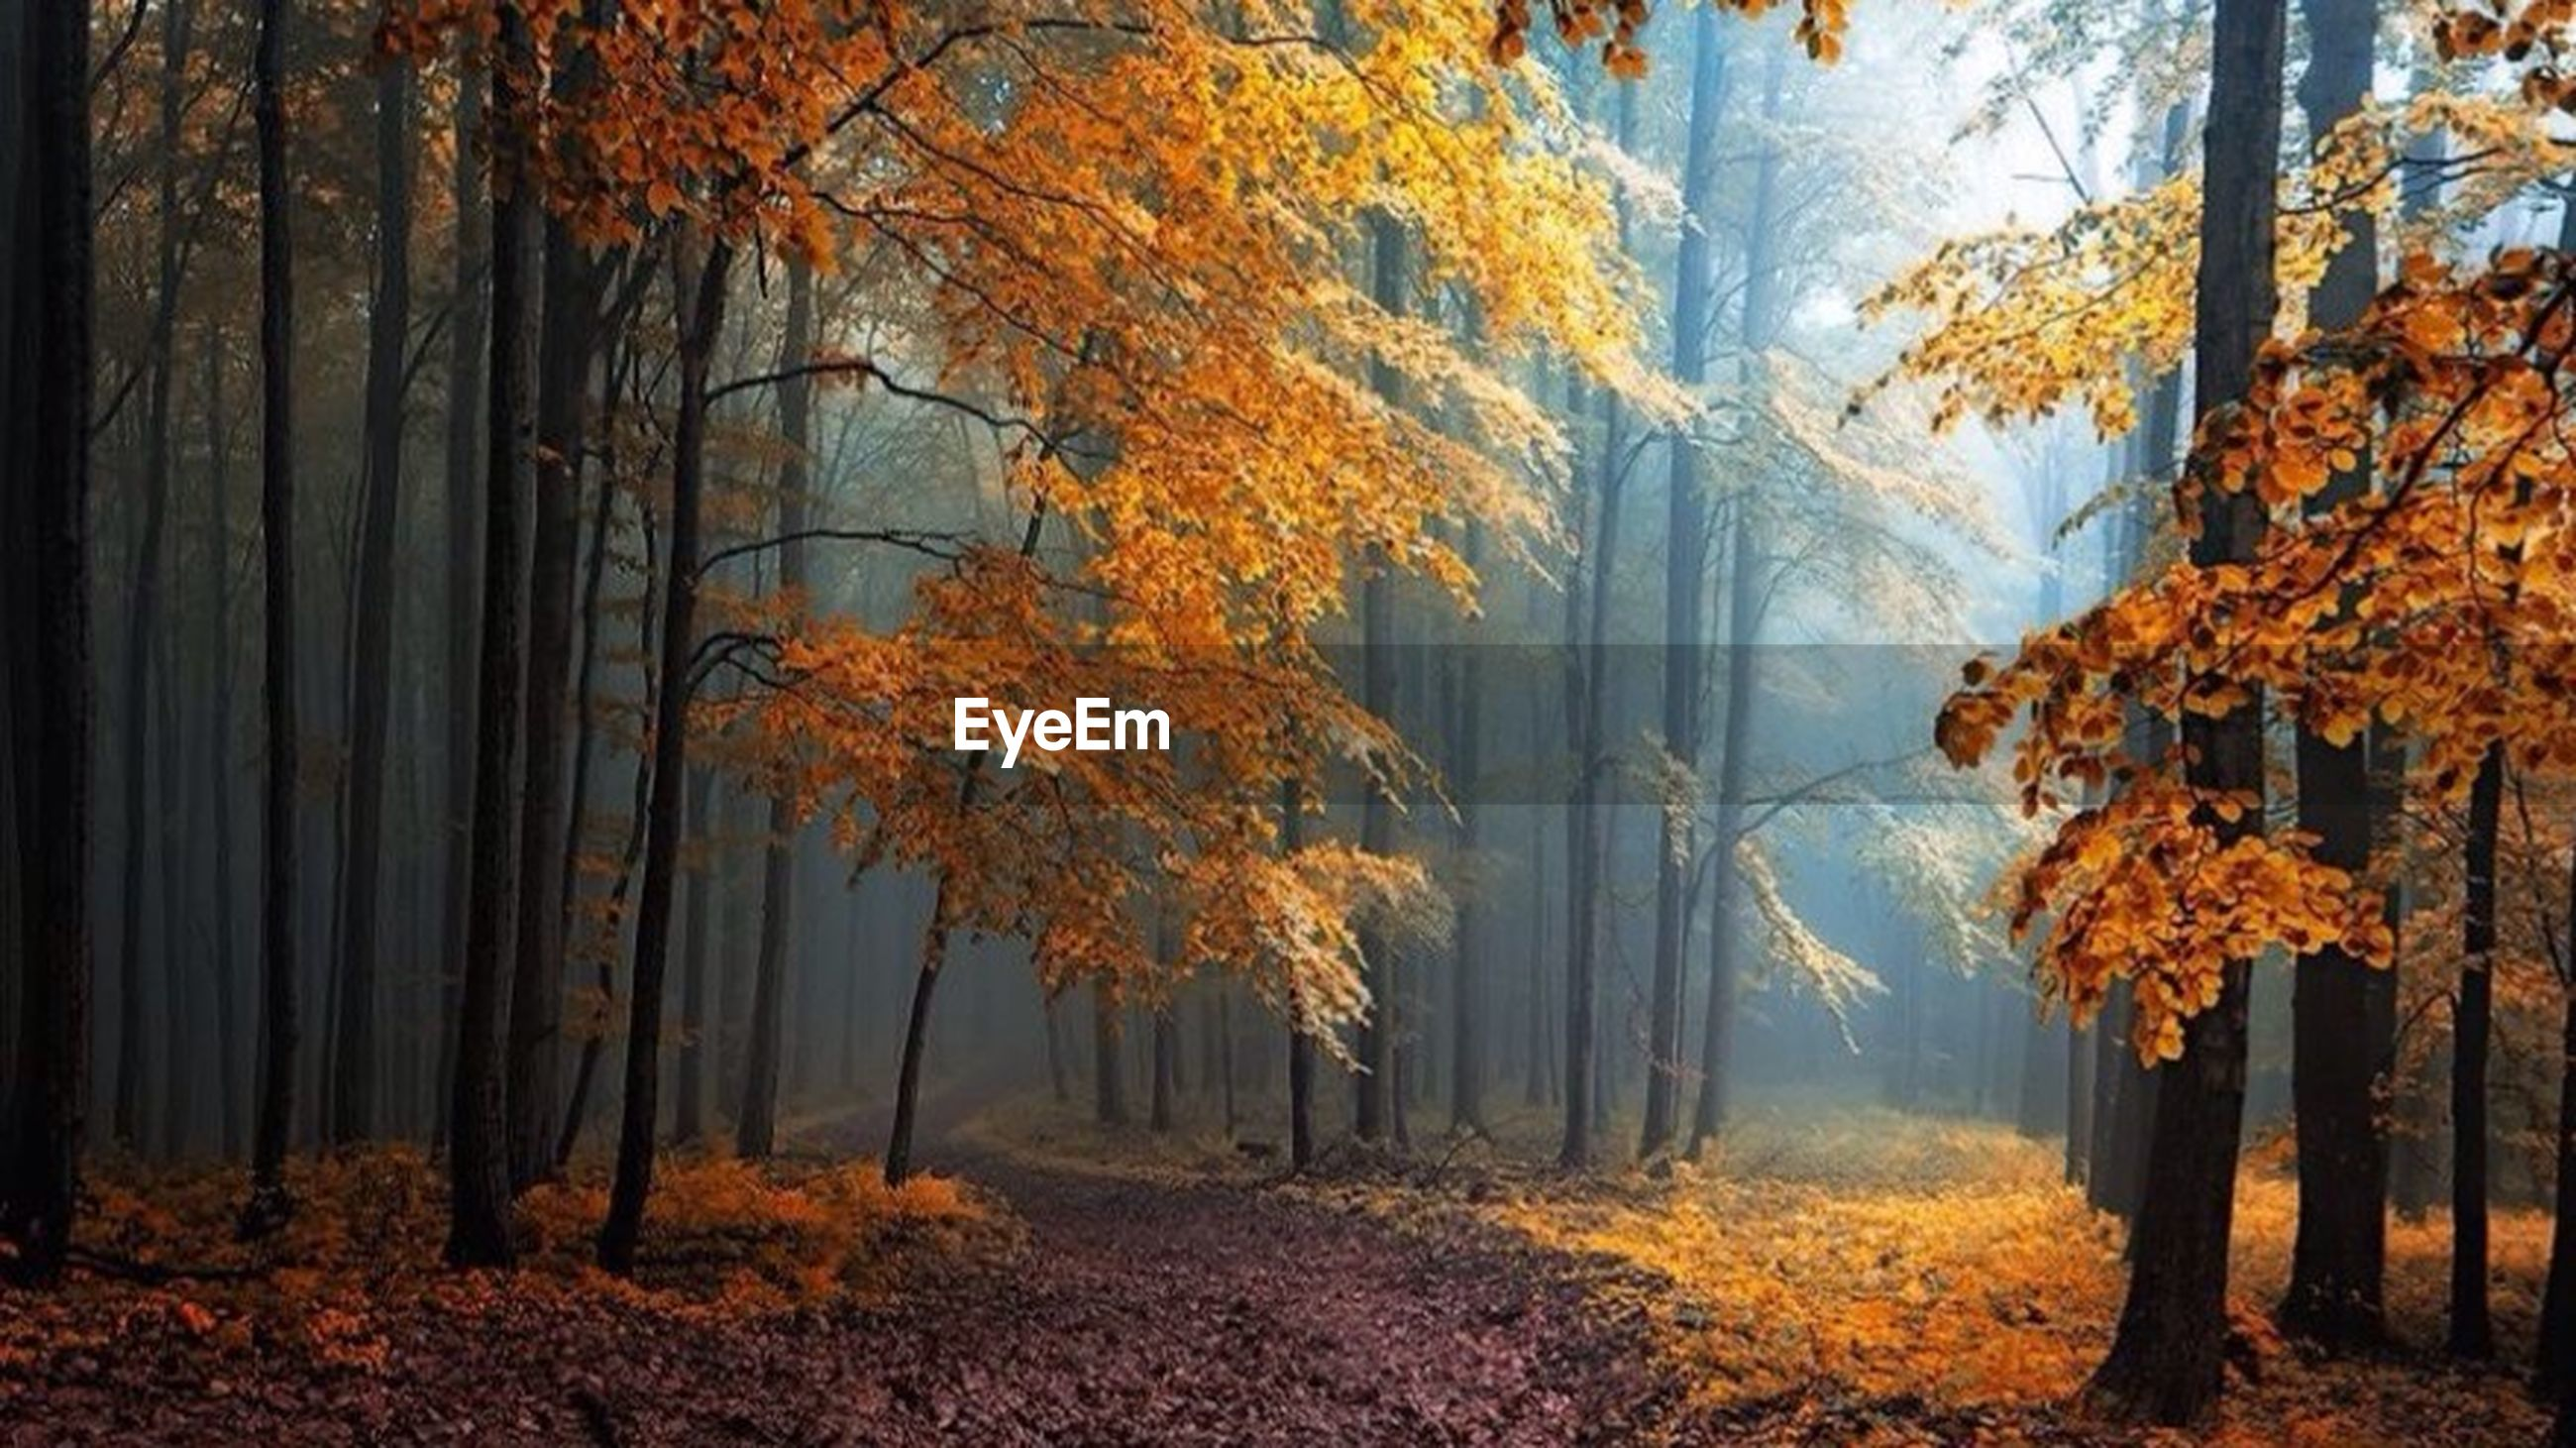 tree, autumn, change, season, tranquility, orange color, beauty in nature, nature, tranquil scene, scenics, tree trunk, forest, growth, woodland, branch, non-urban scene, landscape, idyllic, outdoors, day